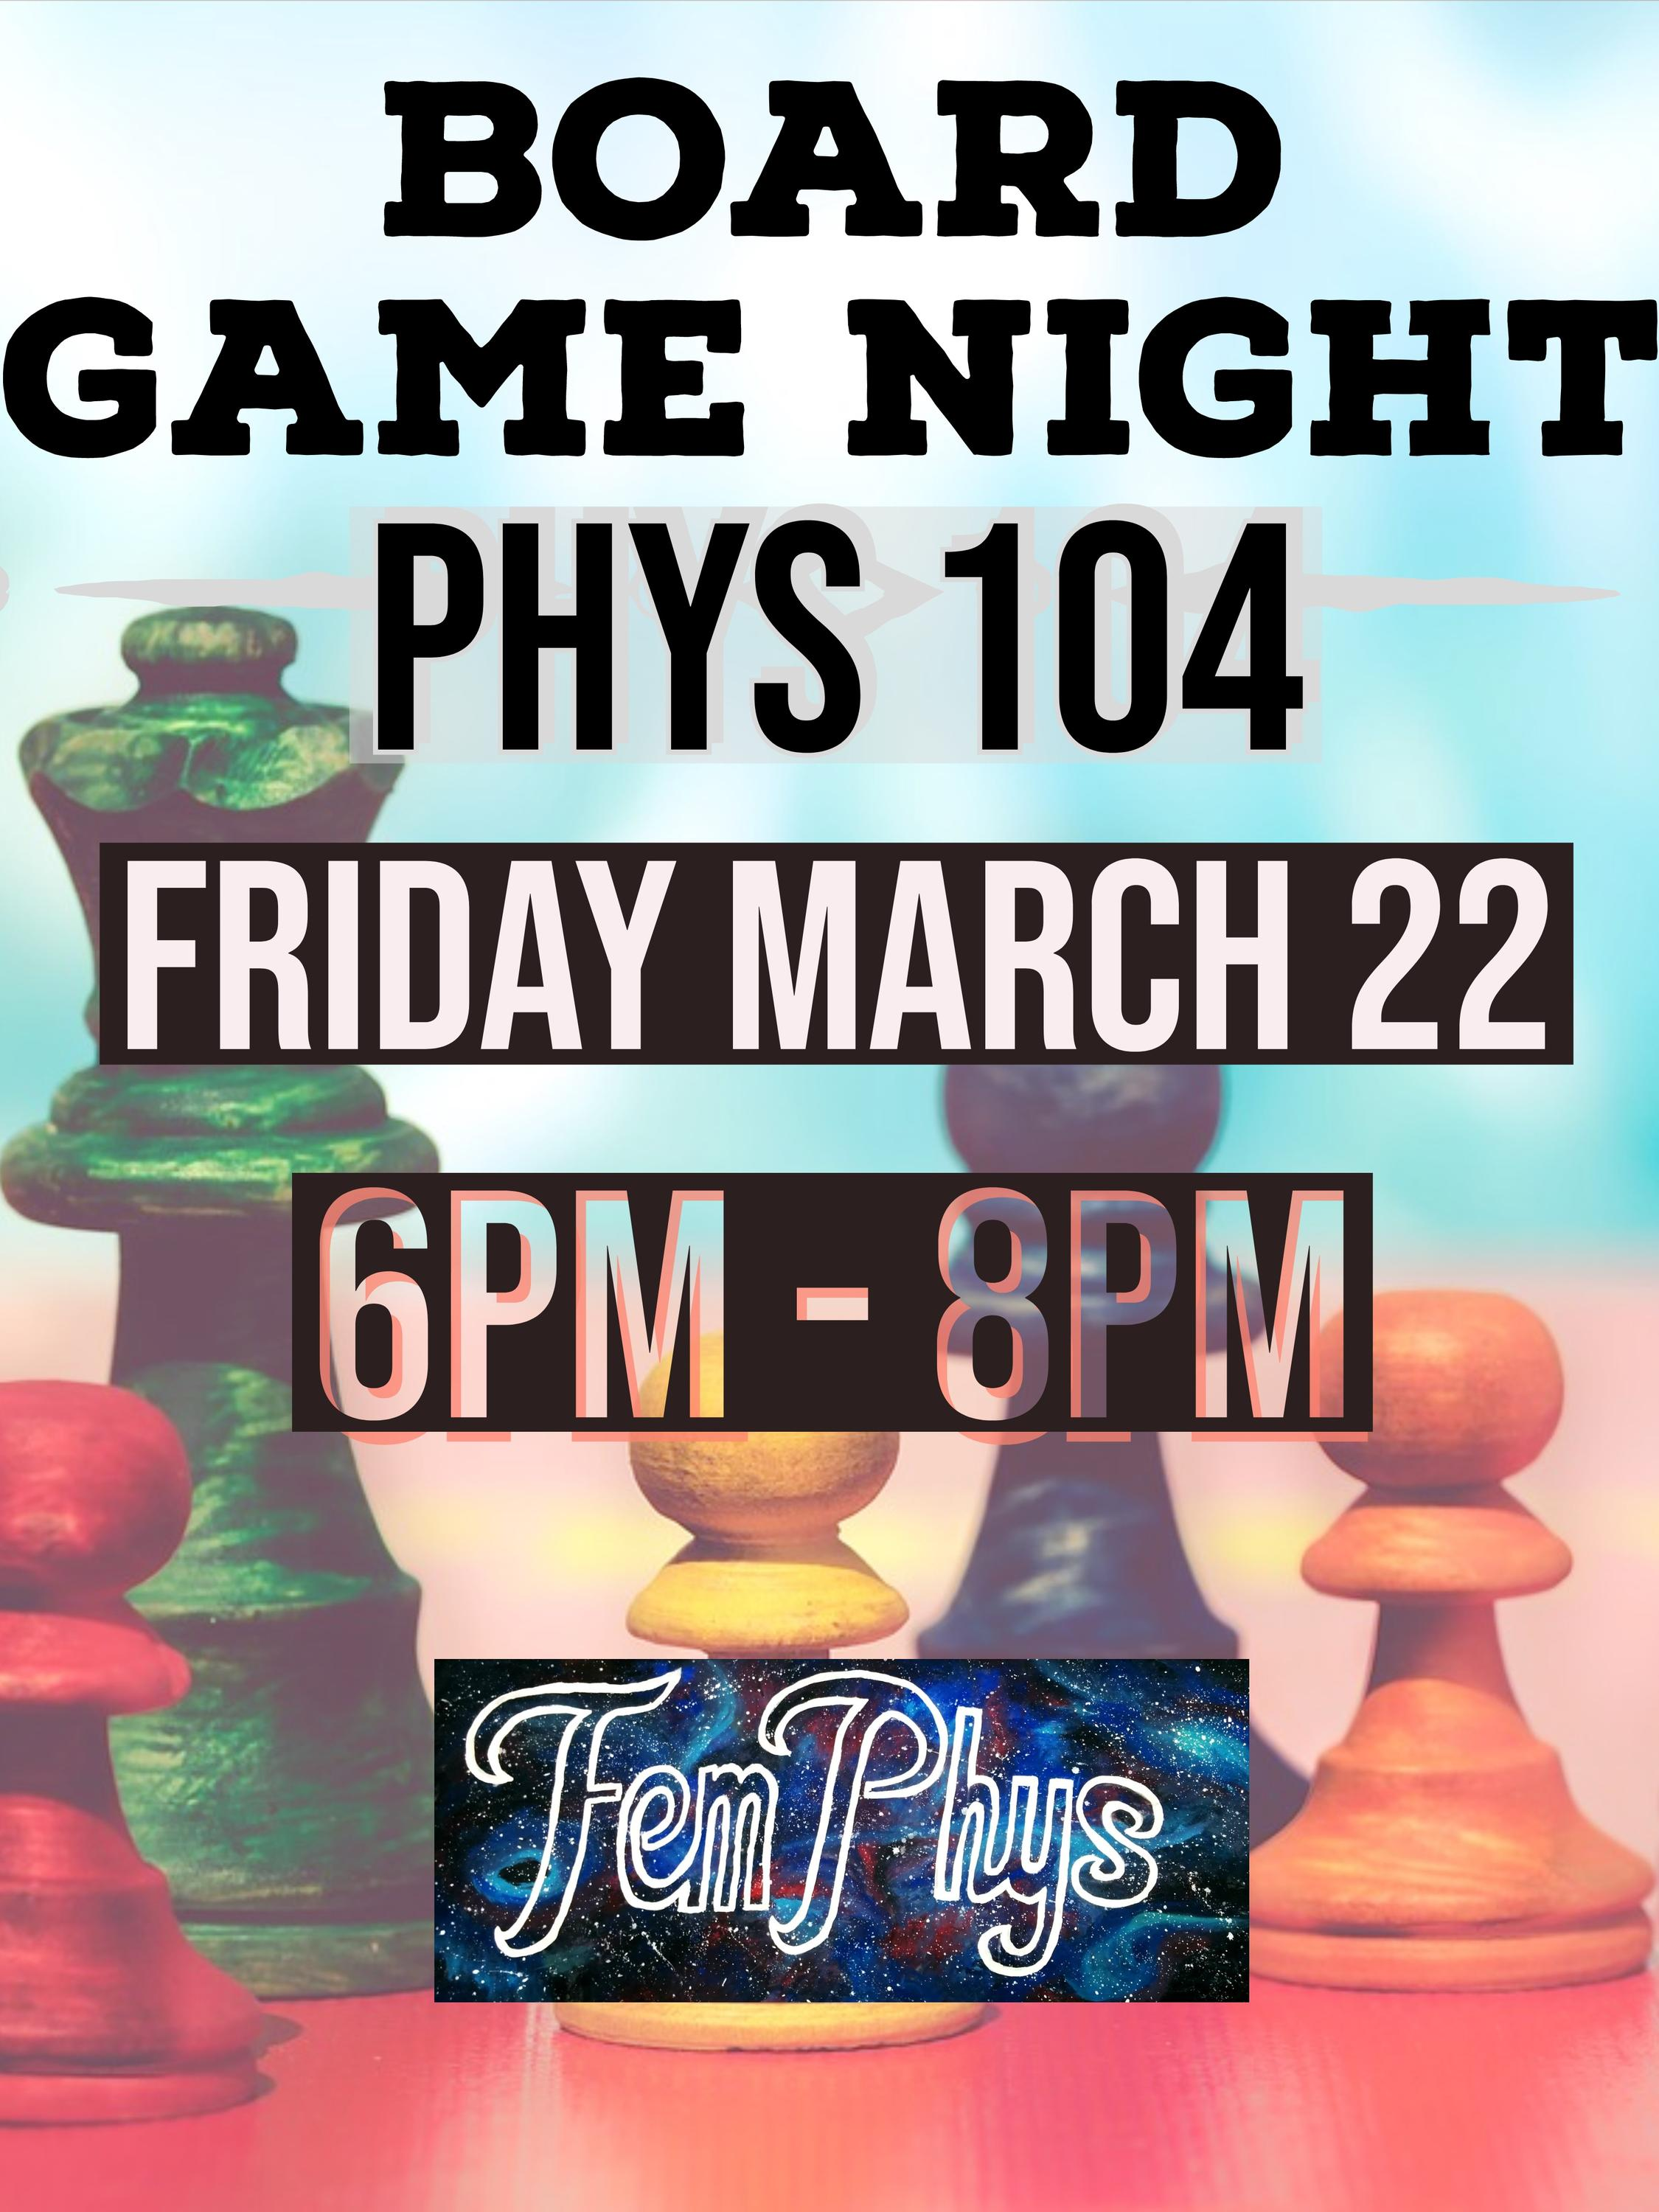 Board Game Night Friday March 22 6-8 pm in Phys 104